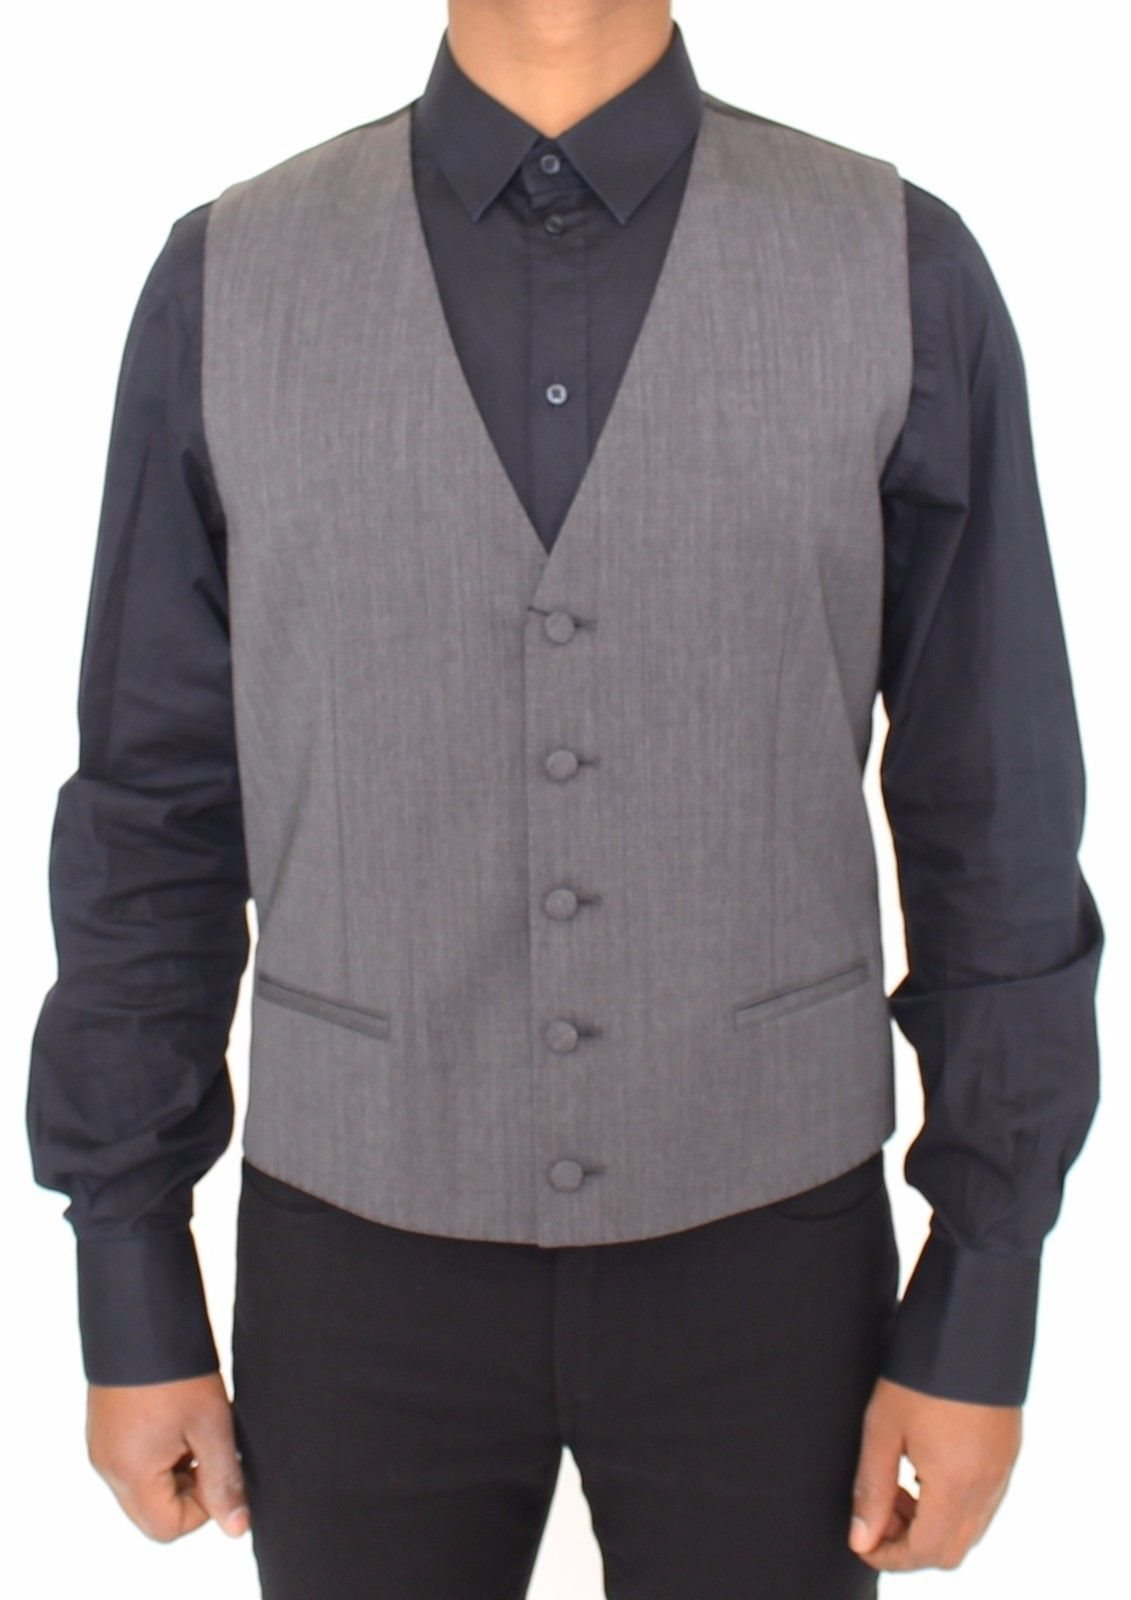 Dolce & Gabbana - Gray Wool Stretch Dress Vest Jacket Blazer